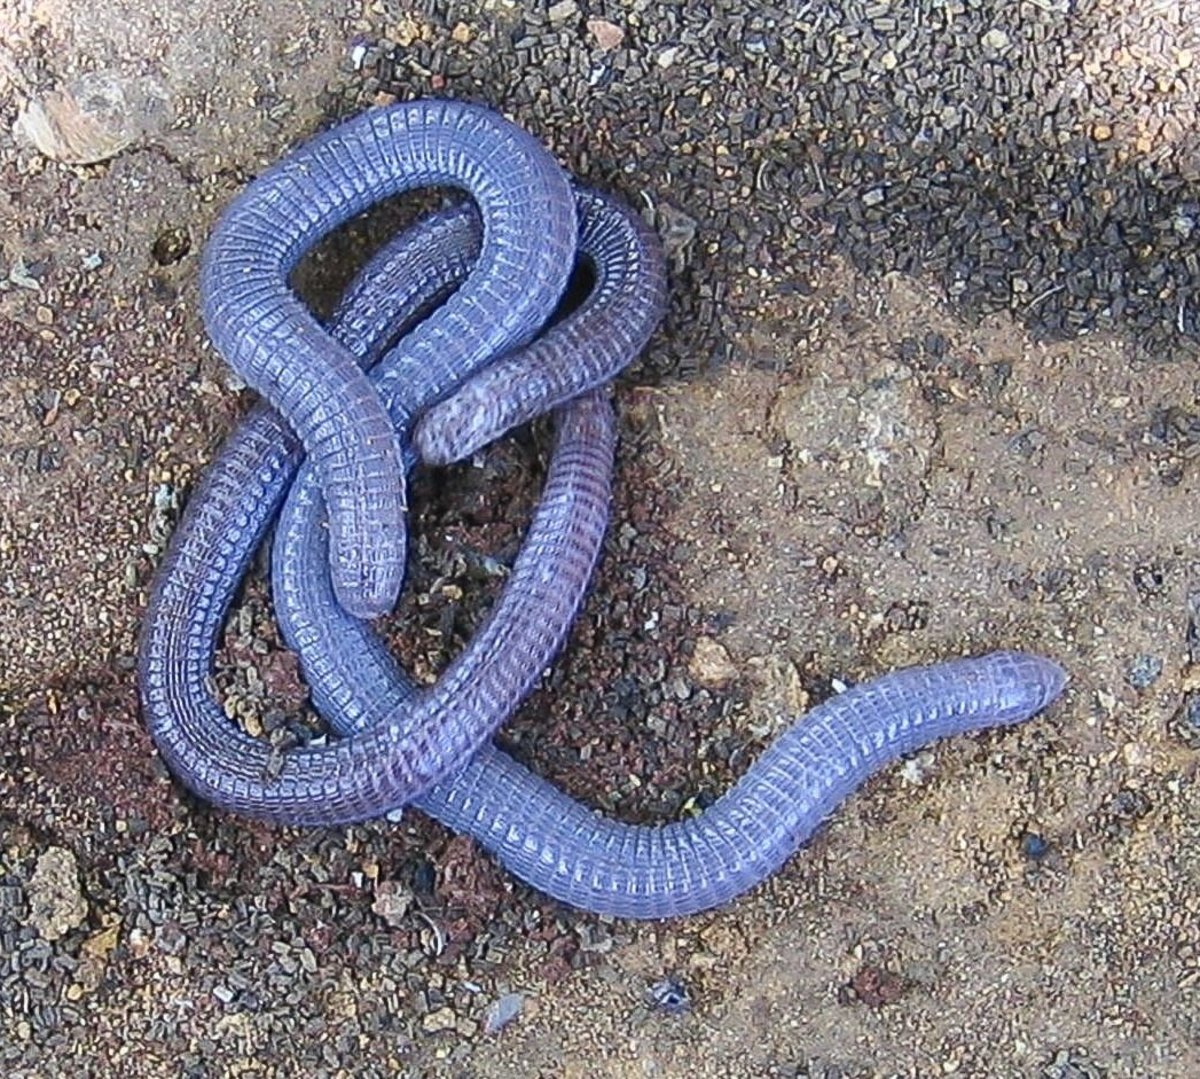 These are two Iberian worm lizards and not blue earthworms.